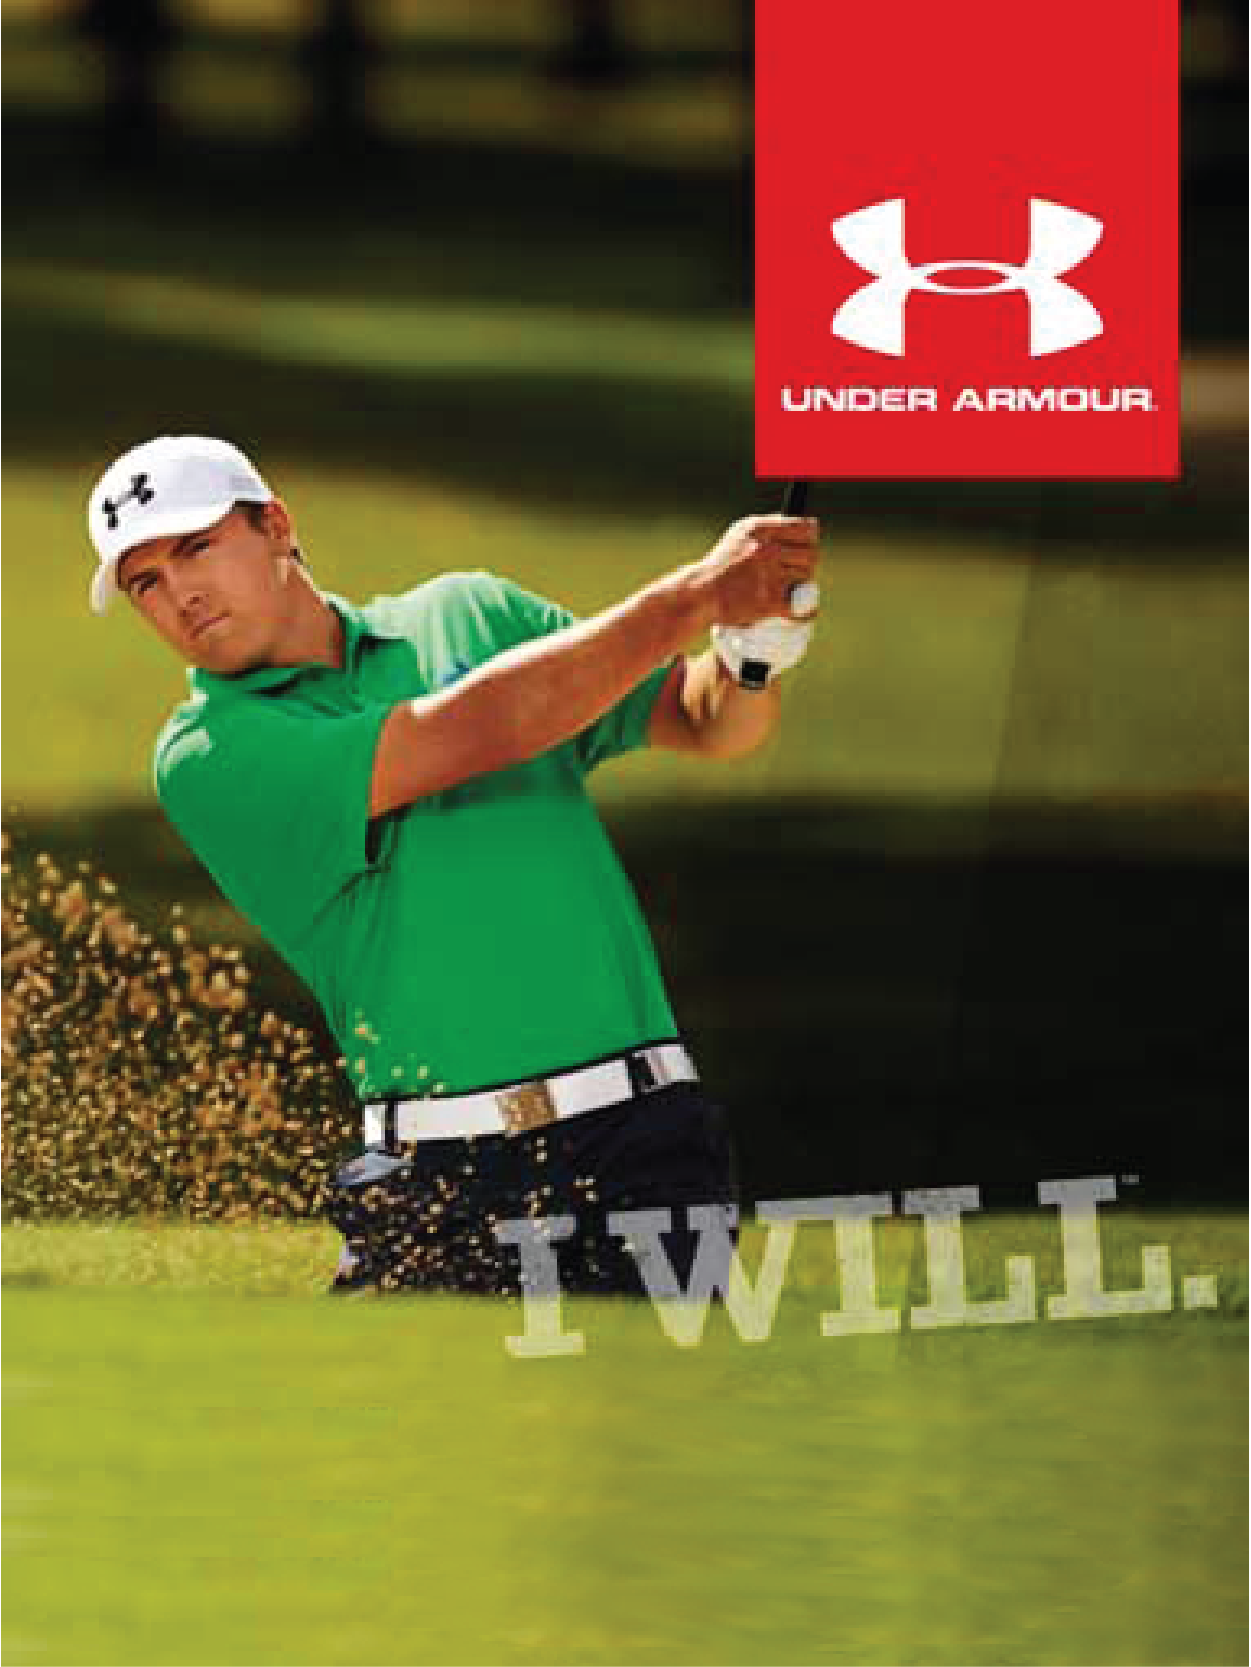 under_armour